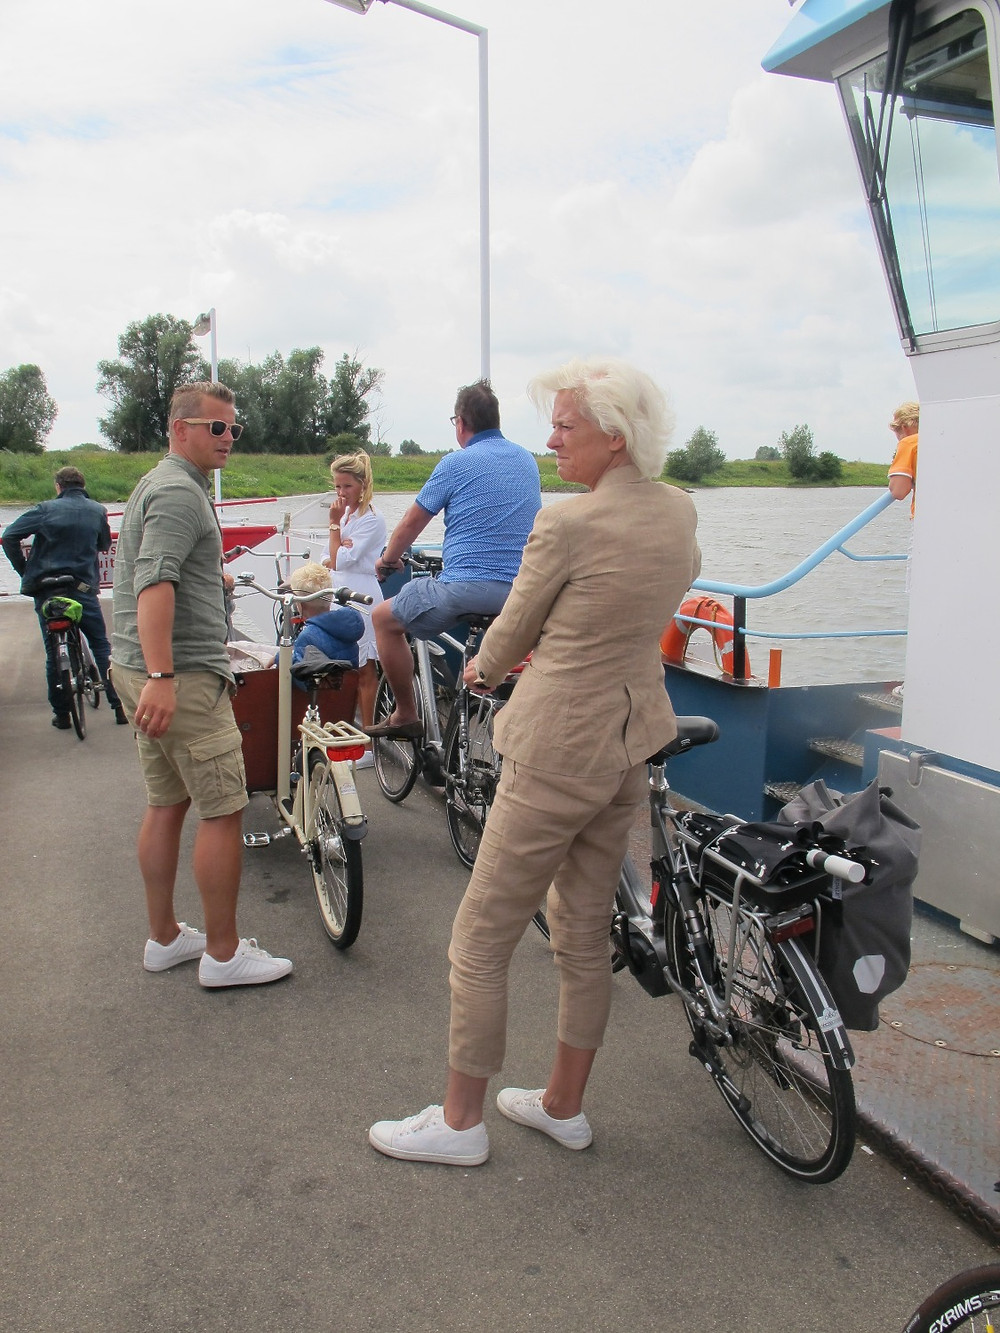 This is what going out for a family ride looks like in the Netherlands